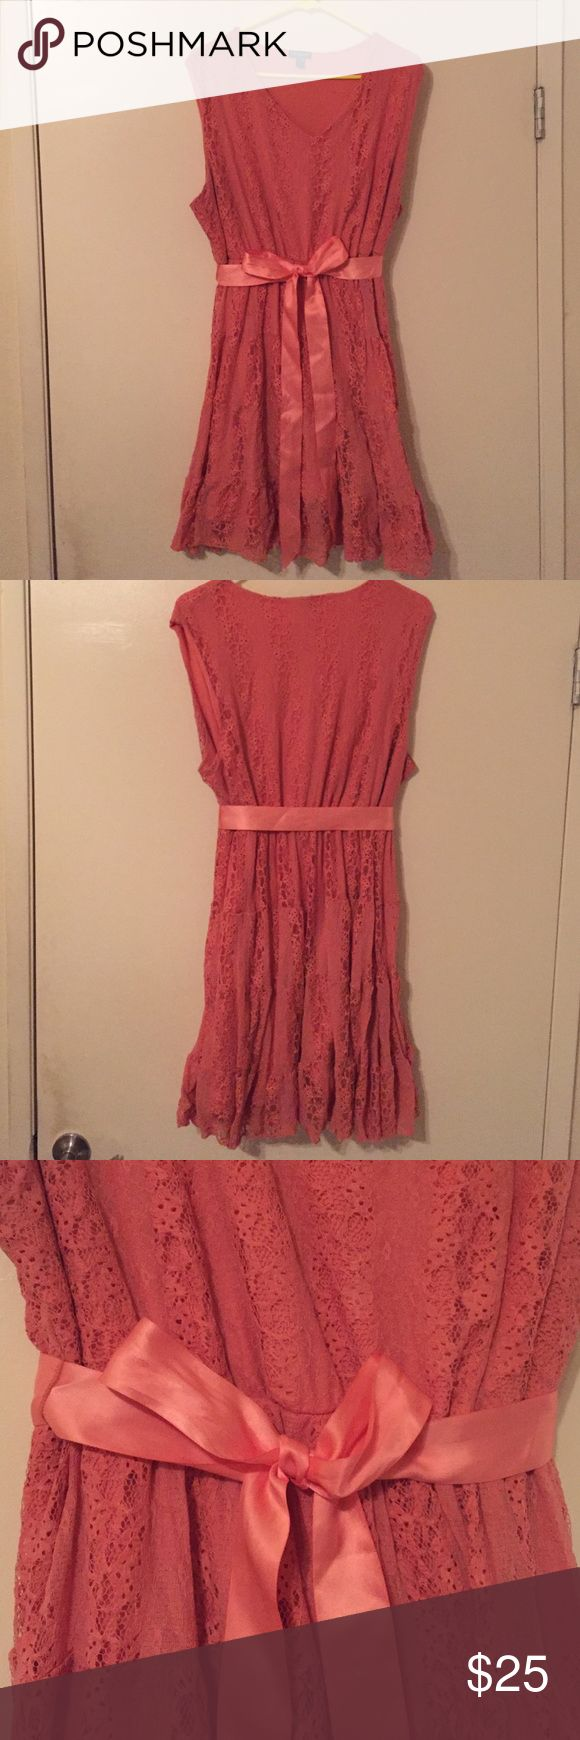 Coral Lace Dress Fully lined coral lace dress with ribbon belt Dresses